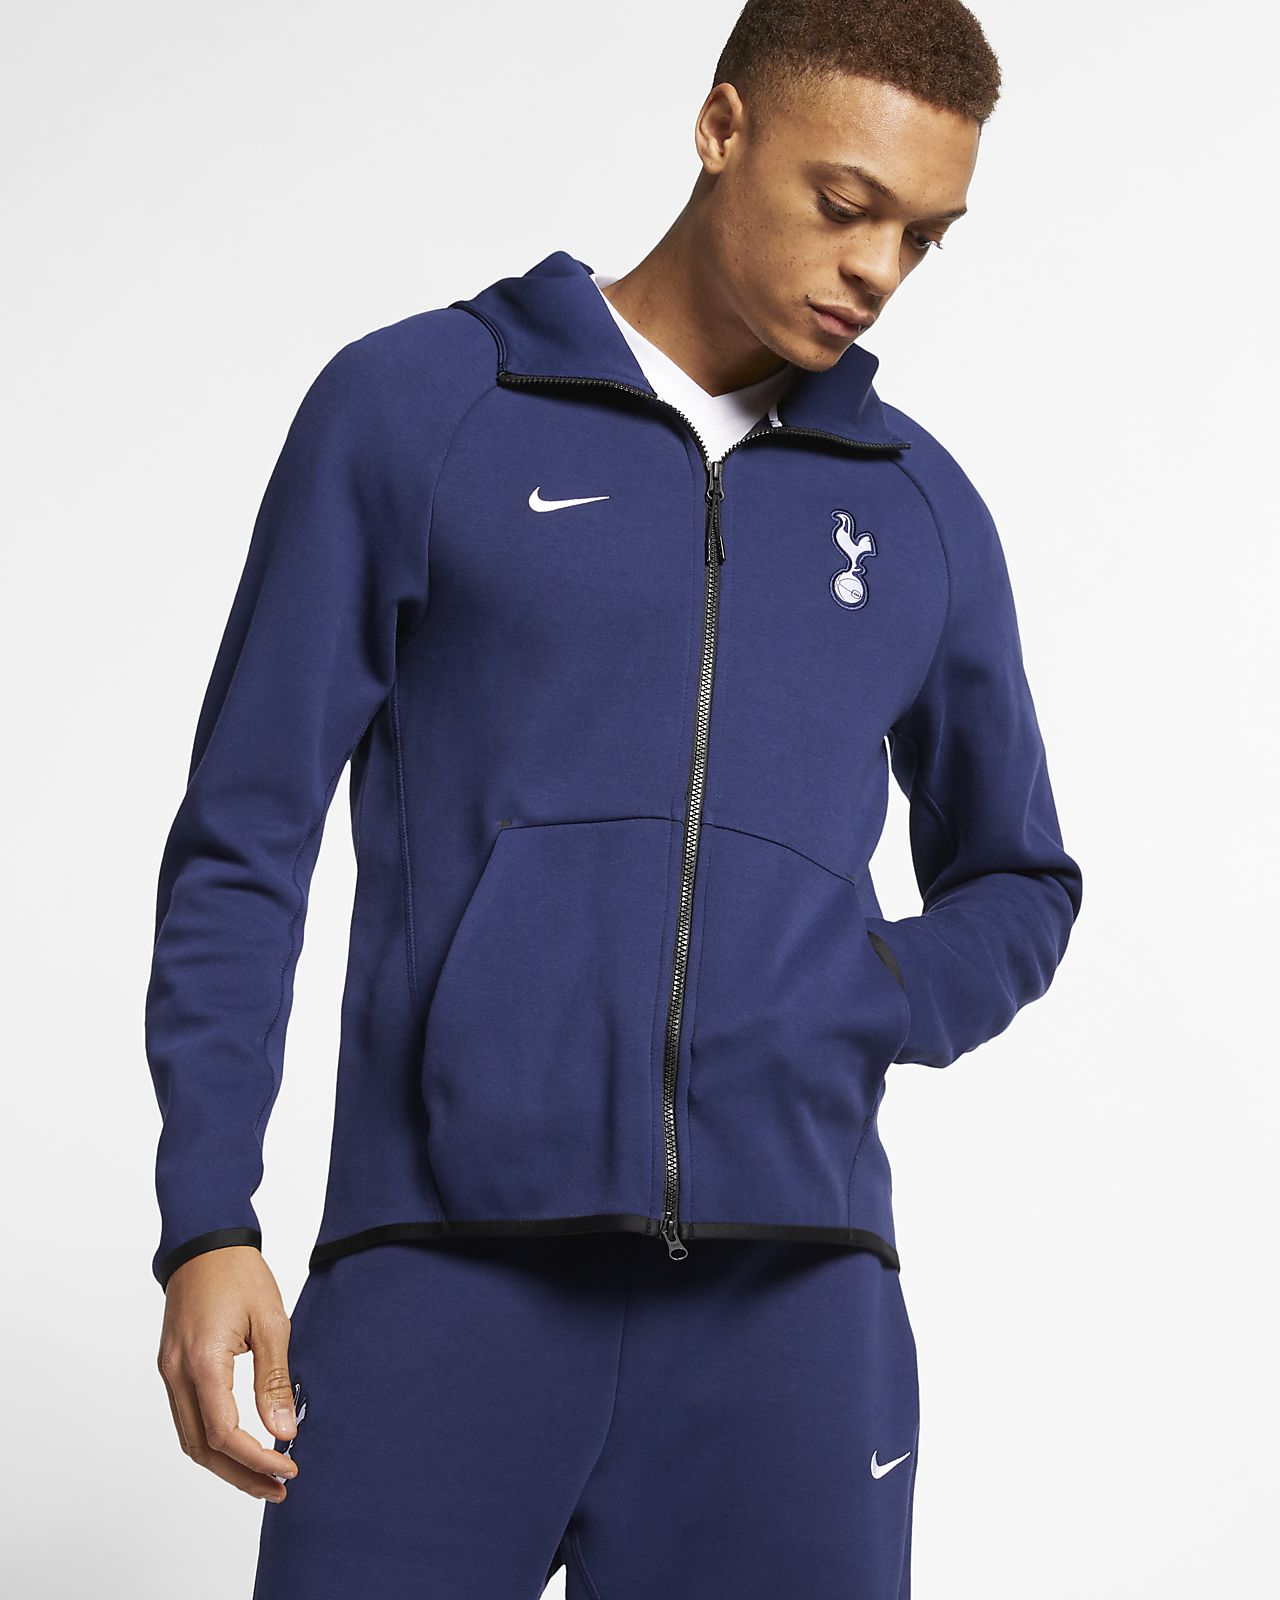 Tottenham Hotspur Tech Fleece Men's Full-Zip Hoodie